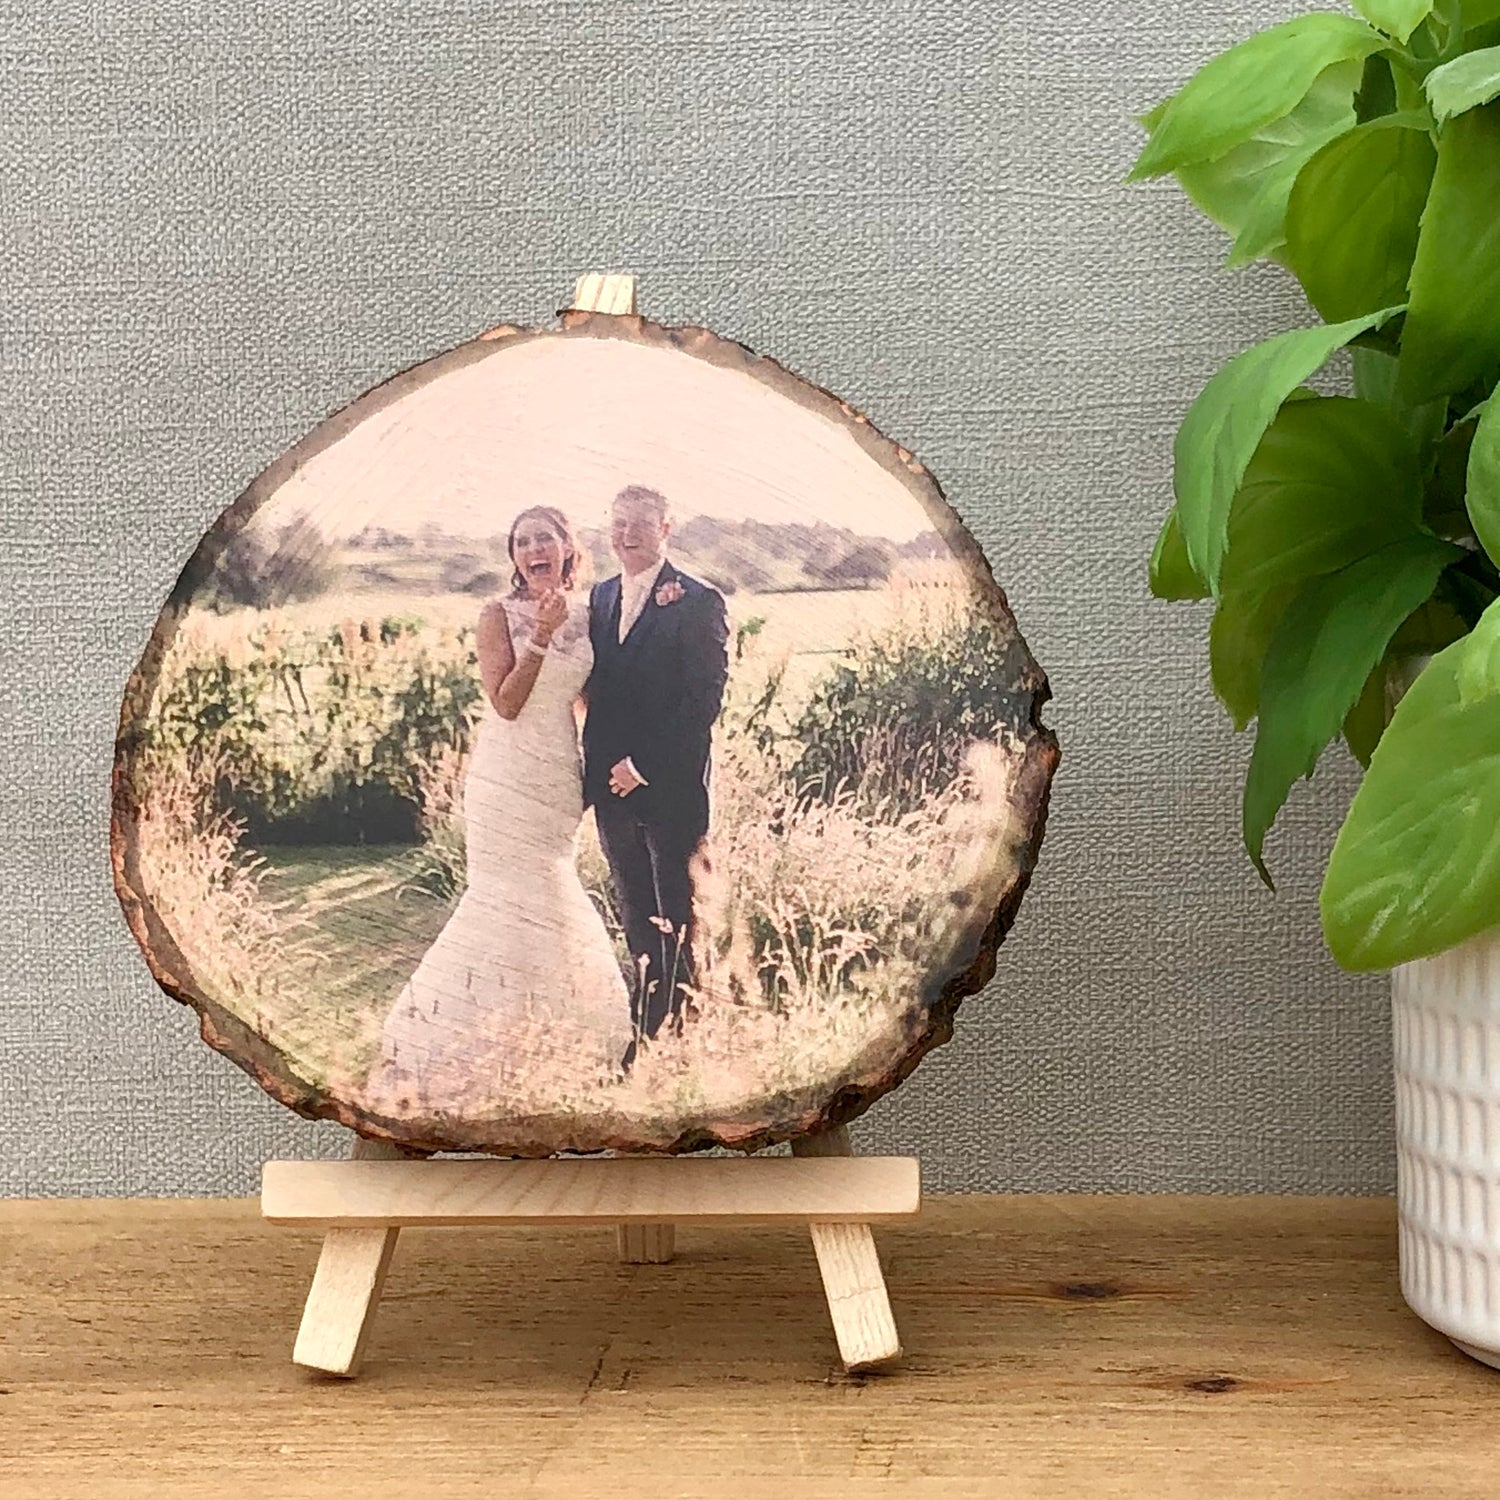 A wood slice photo plaque showing a bride and groom on their wedding day.